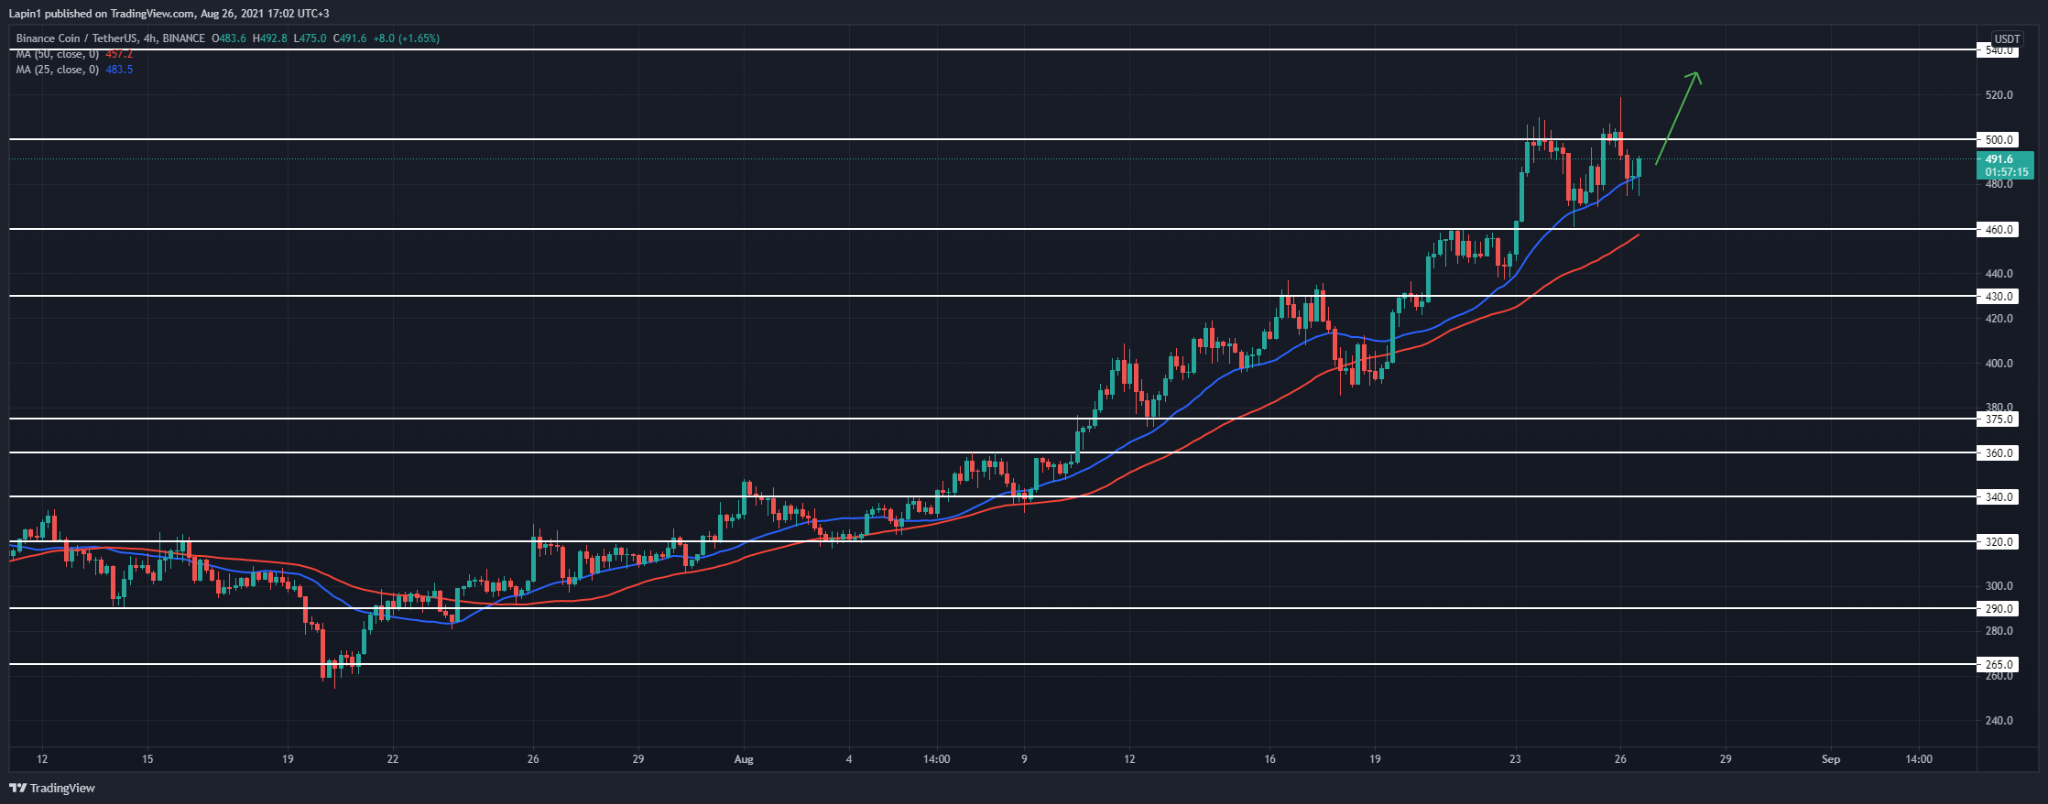 Binance Coin Price Analysis: BNB retraces to $480 after a spike higher overnight